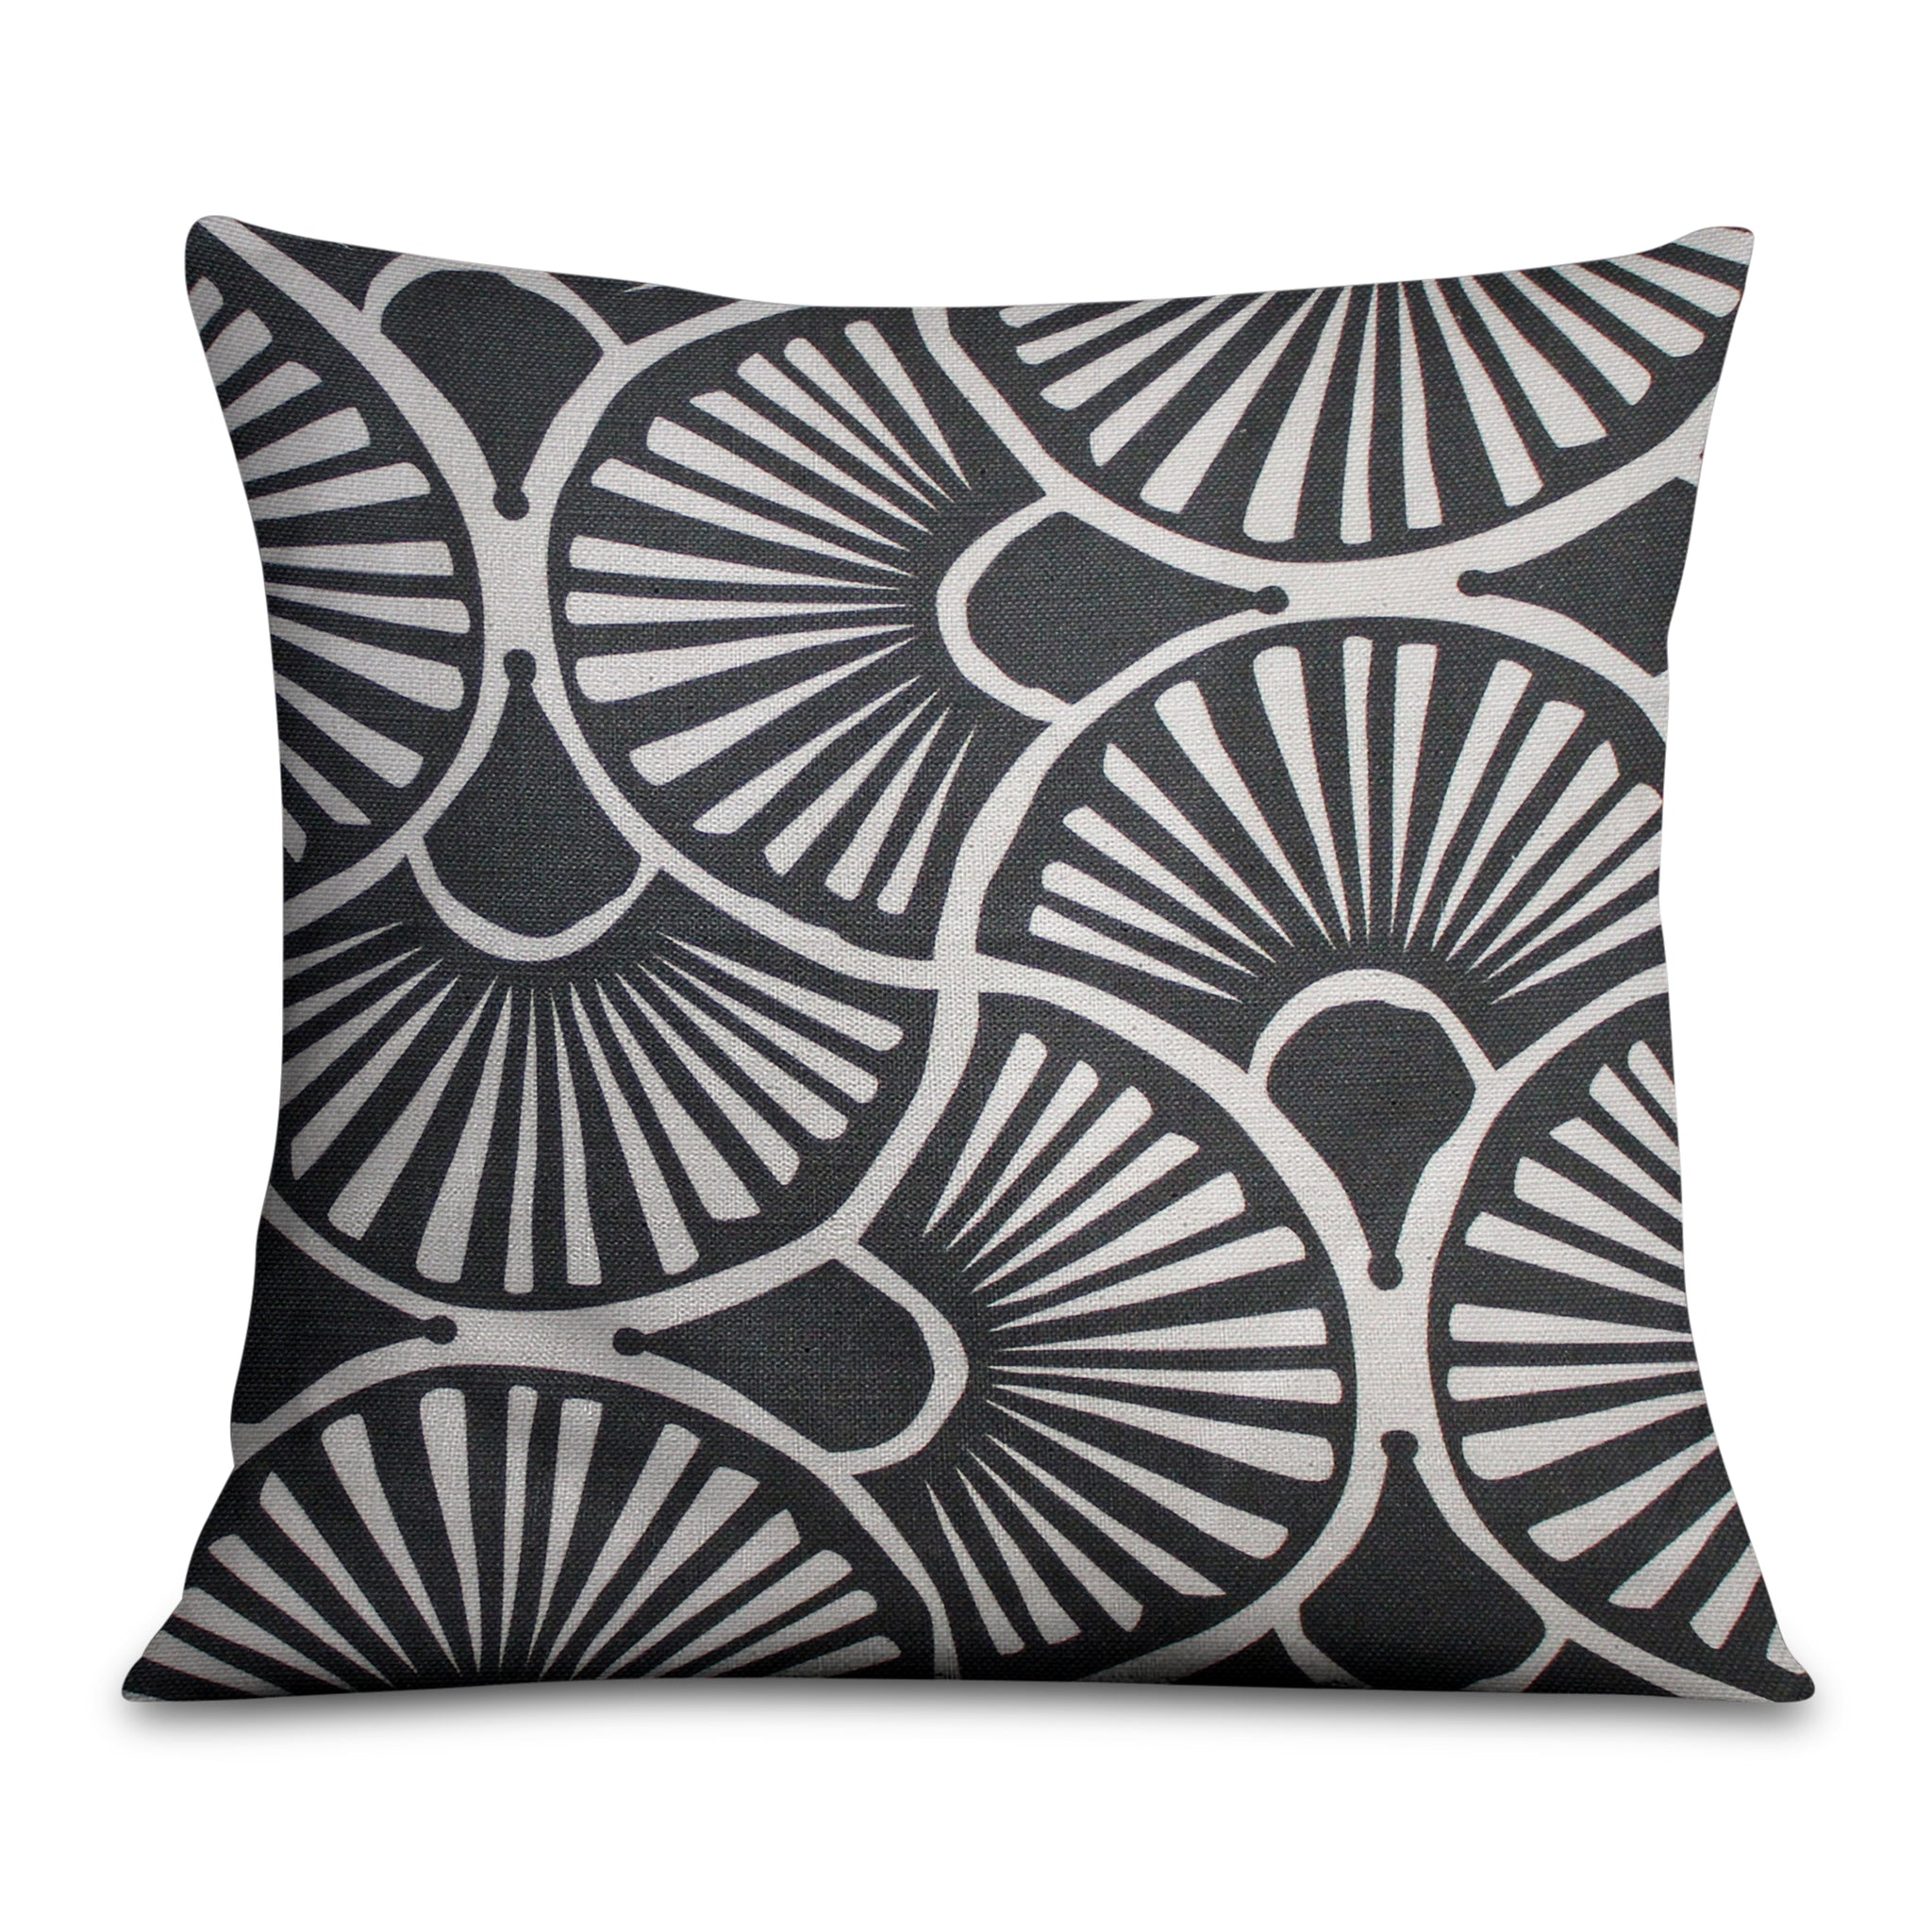 Fantuti Charcoal On Tint Pillow